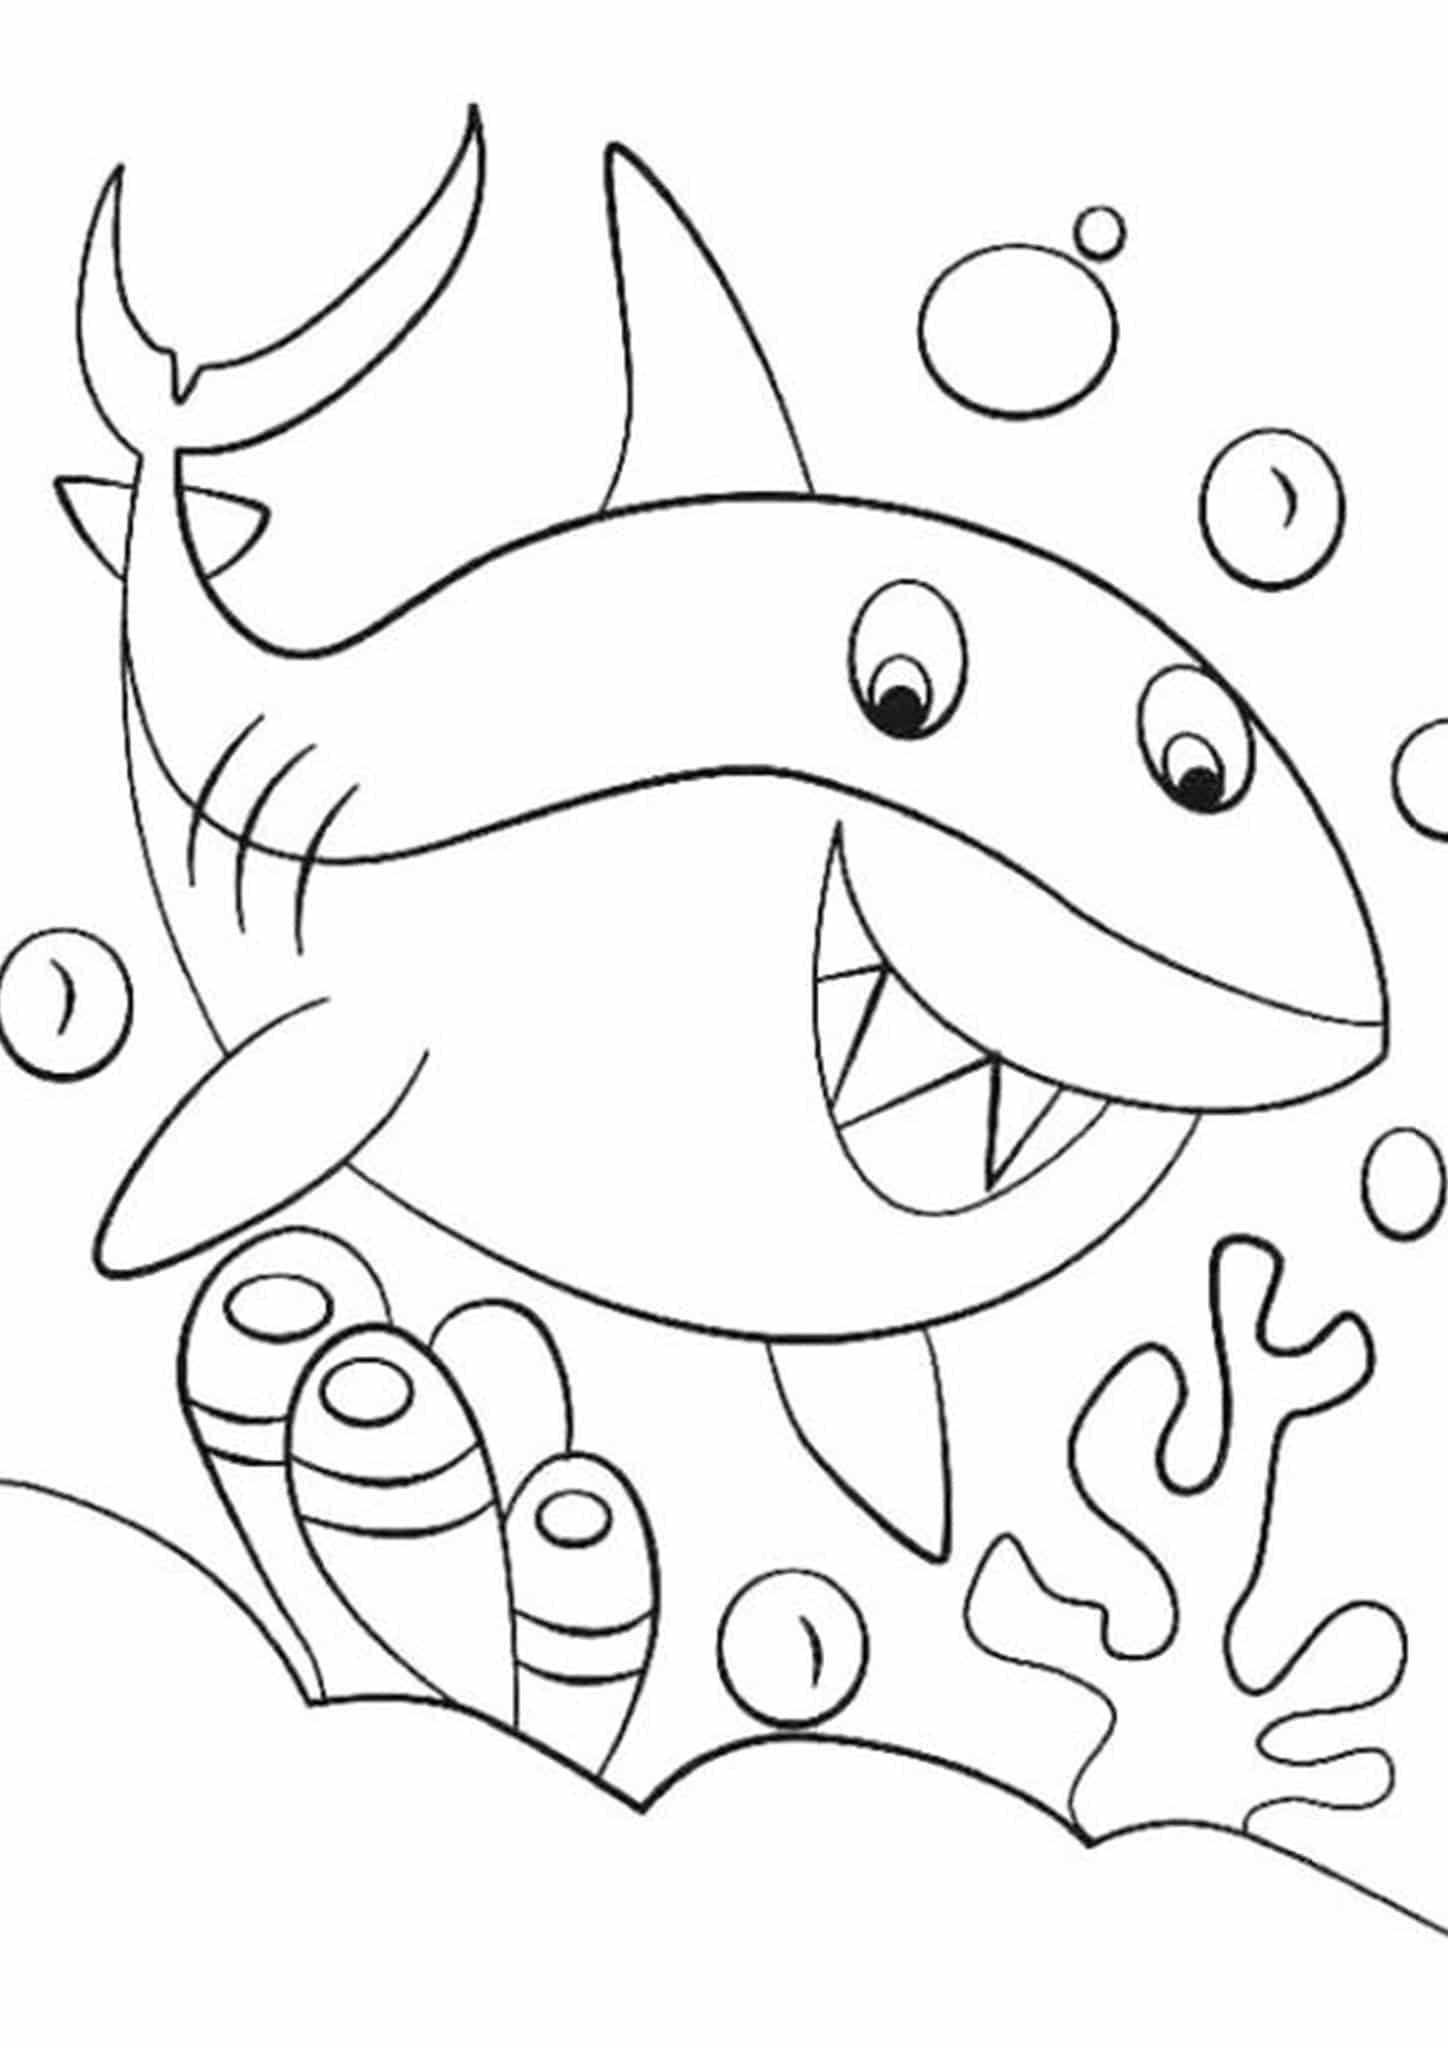 shark coloring pictures to print sharks to color for children sharks kids coloring pages shark print coloring pictures to